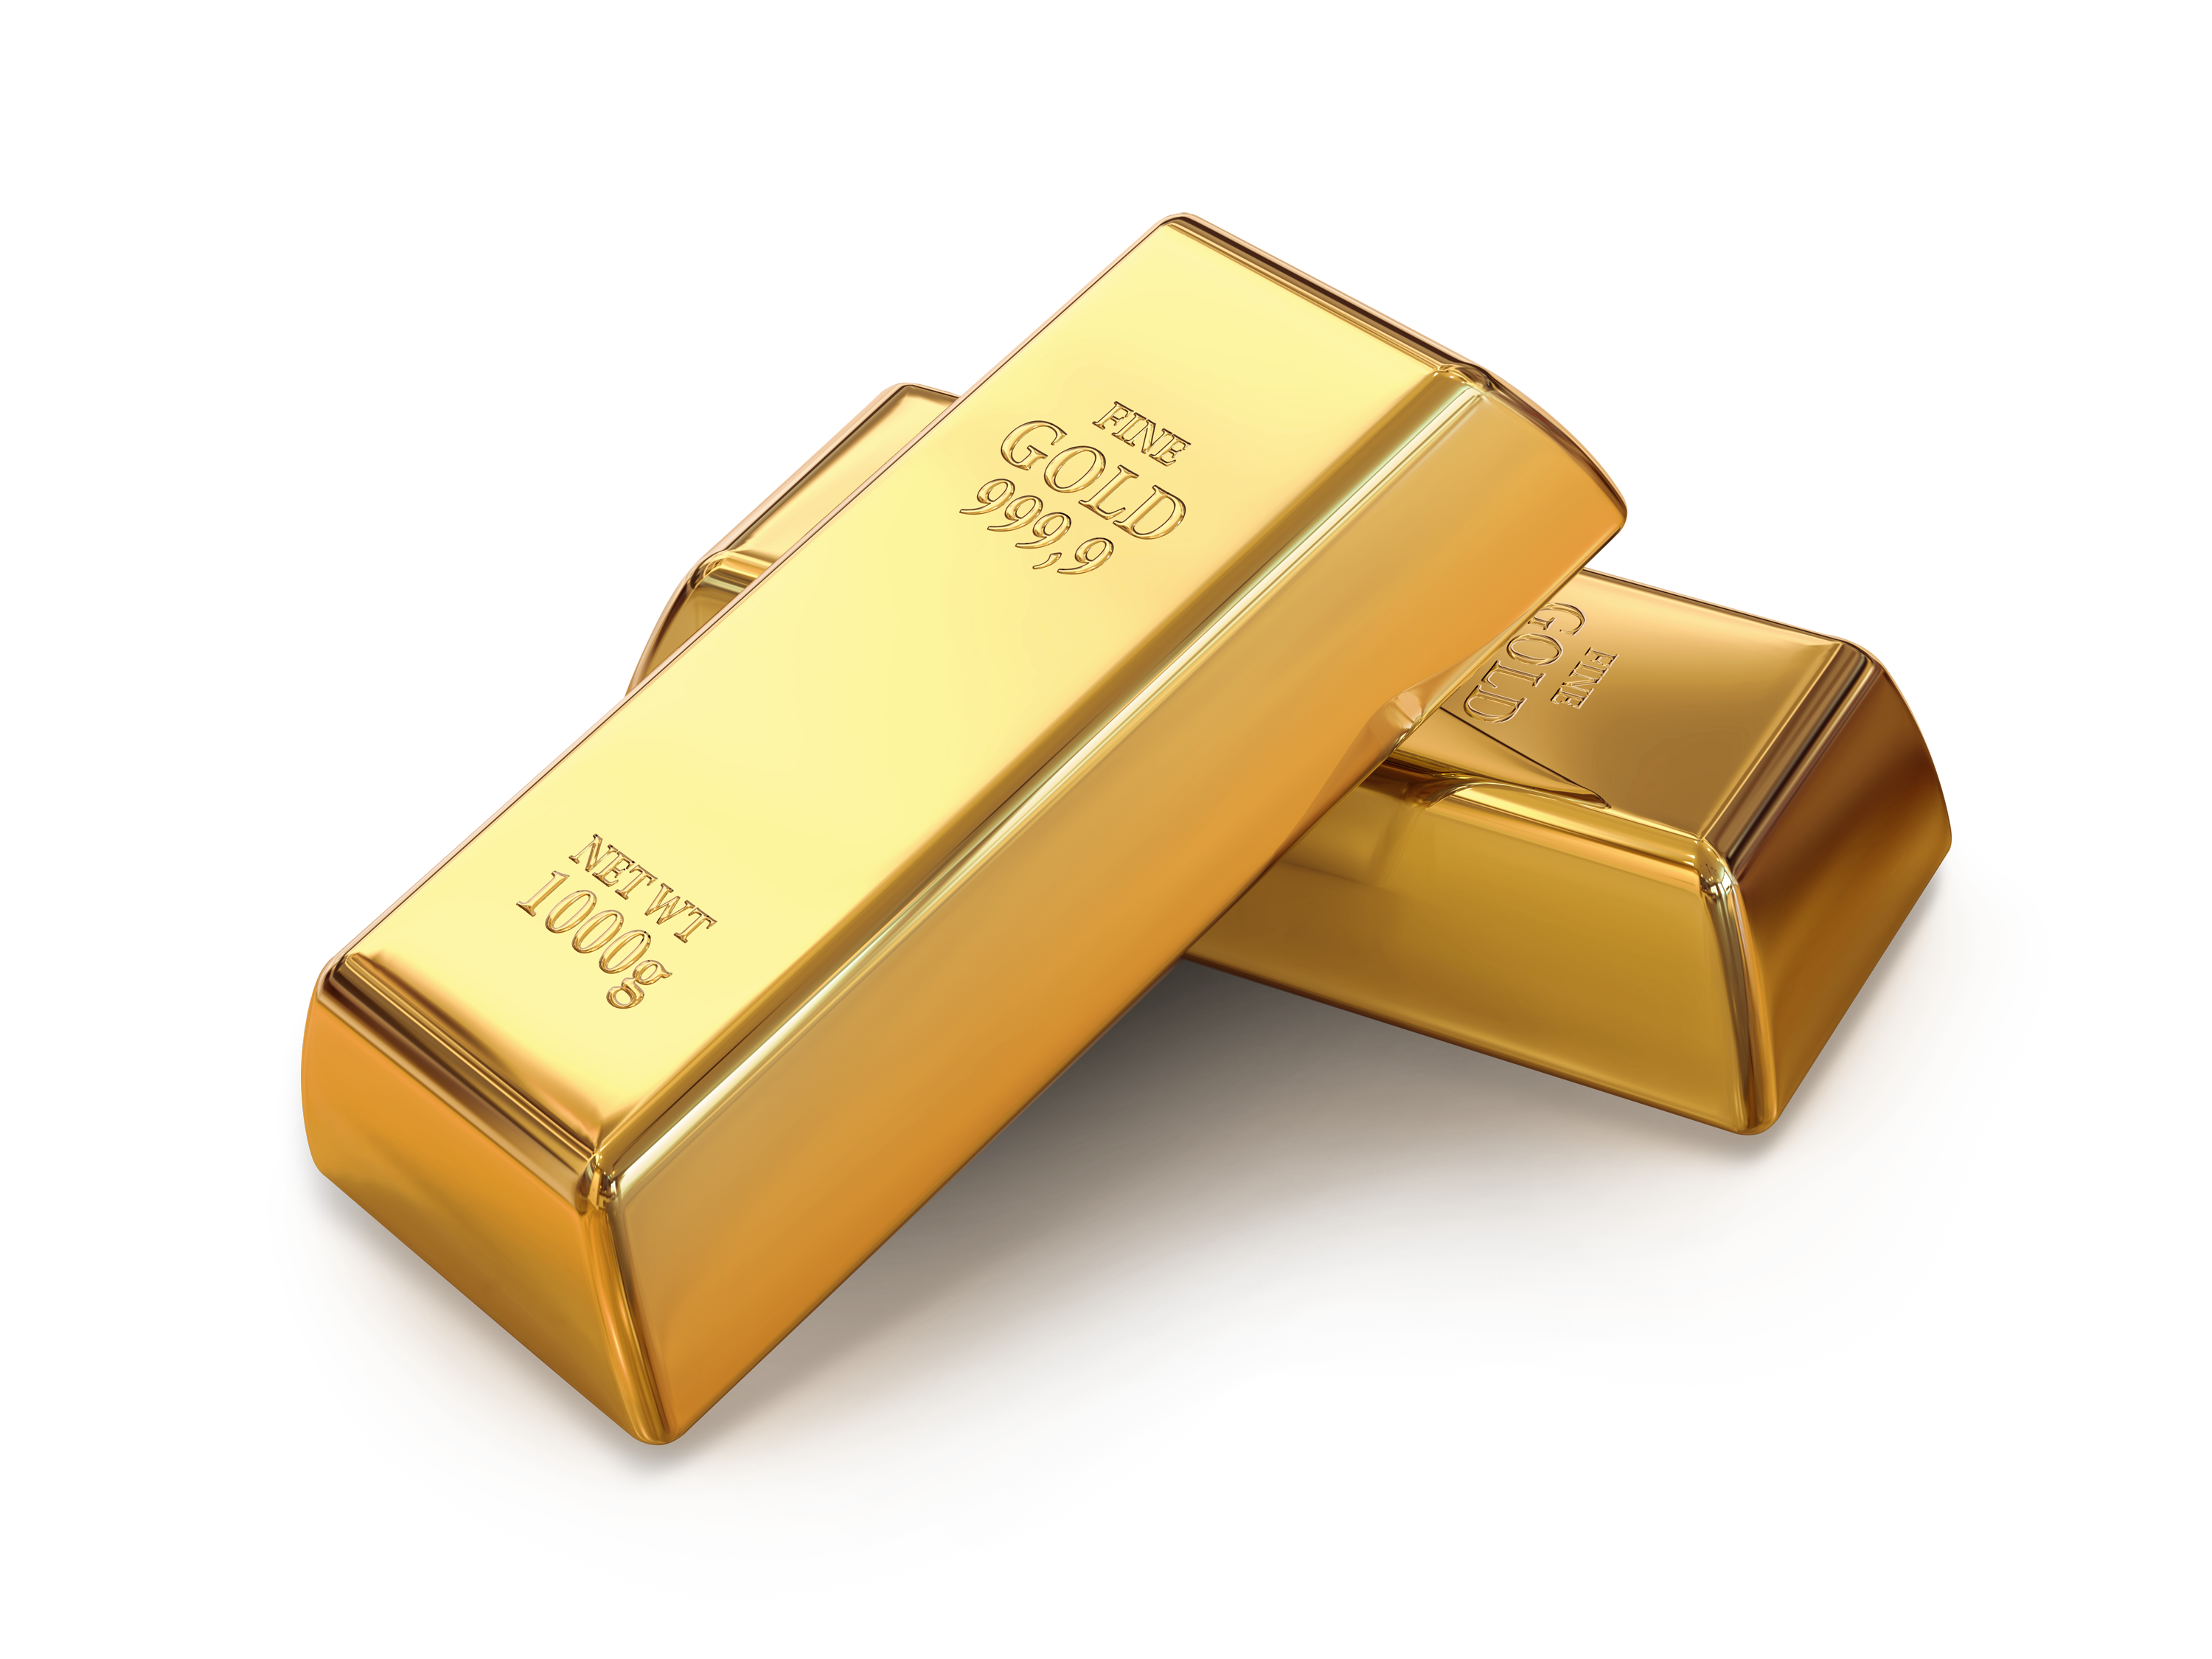 Gold PNG - 23965